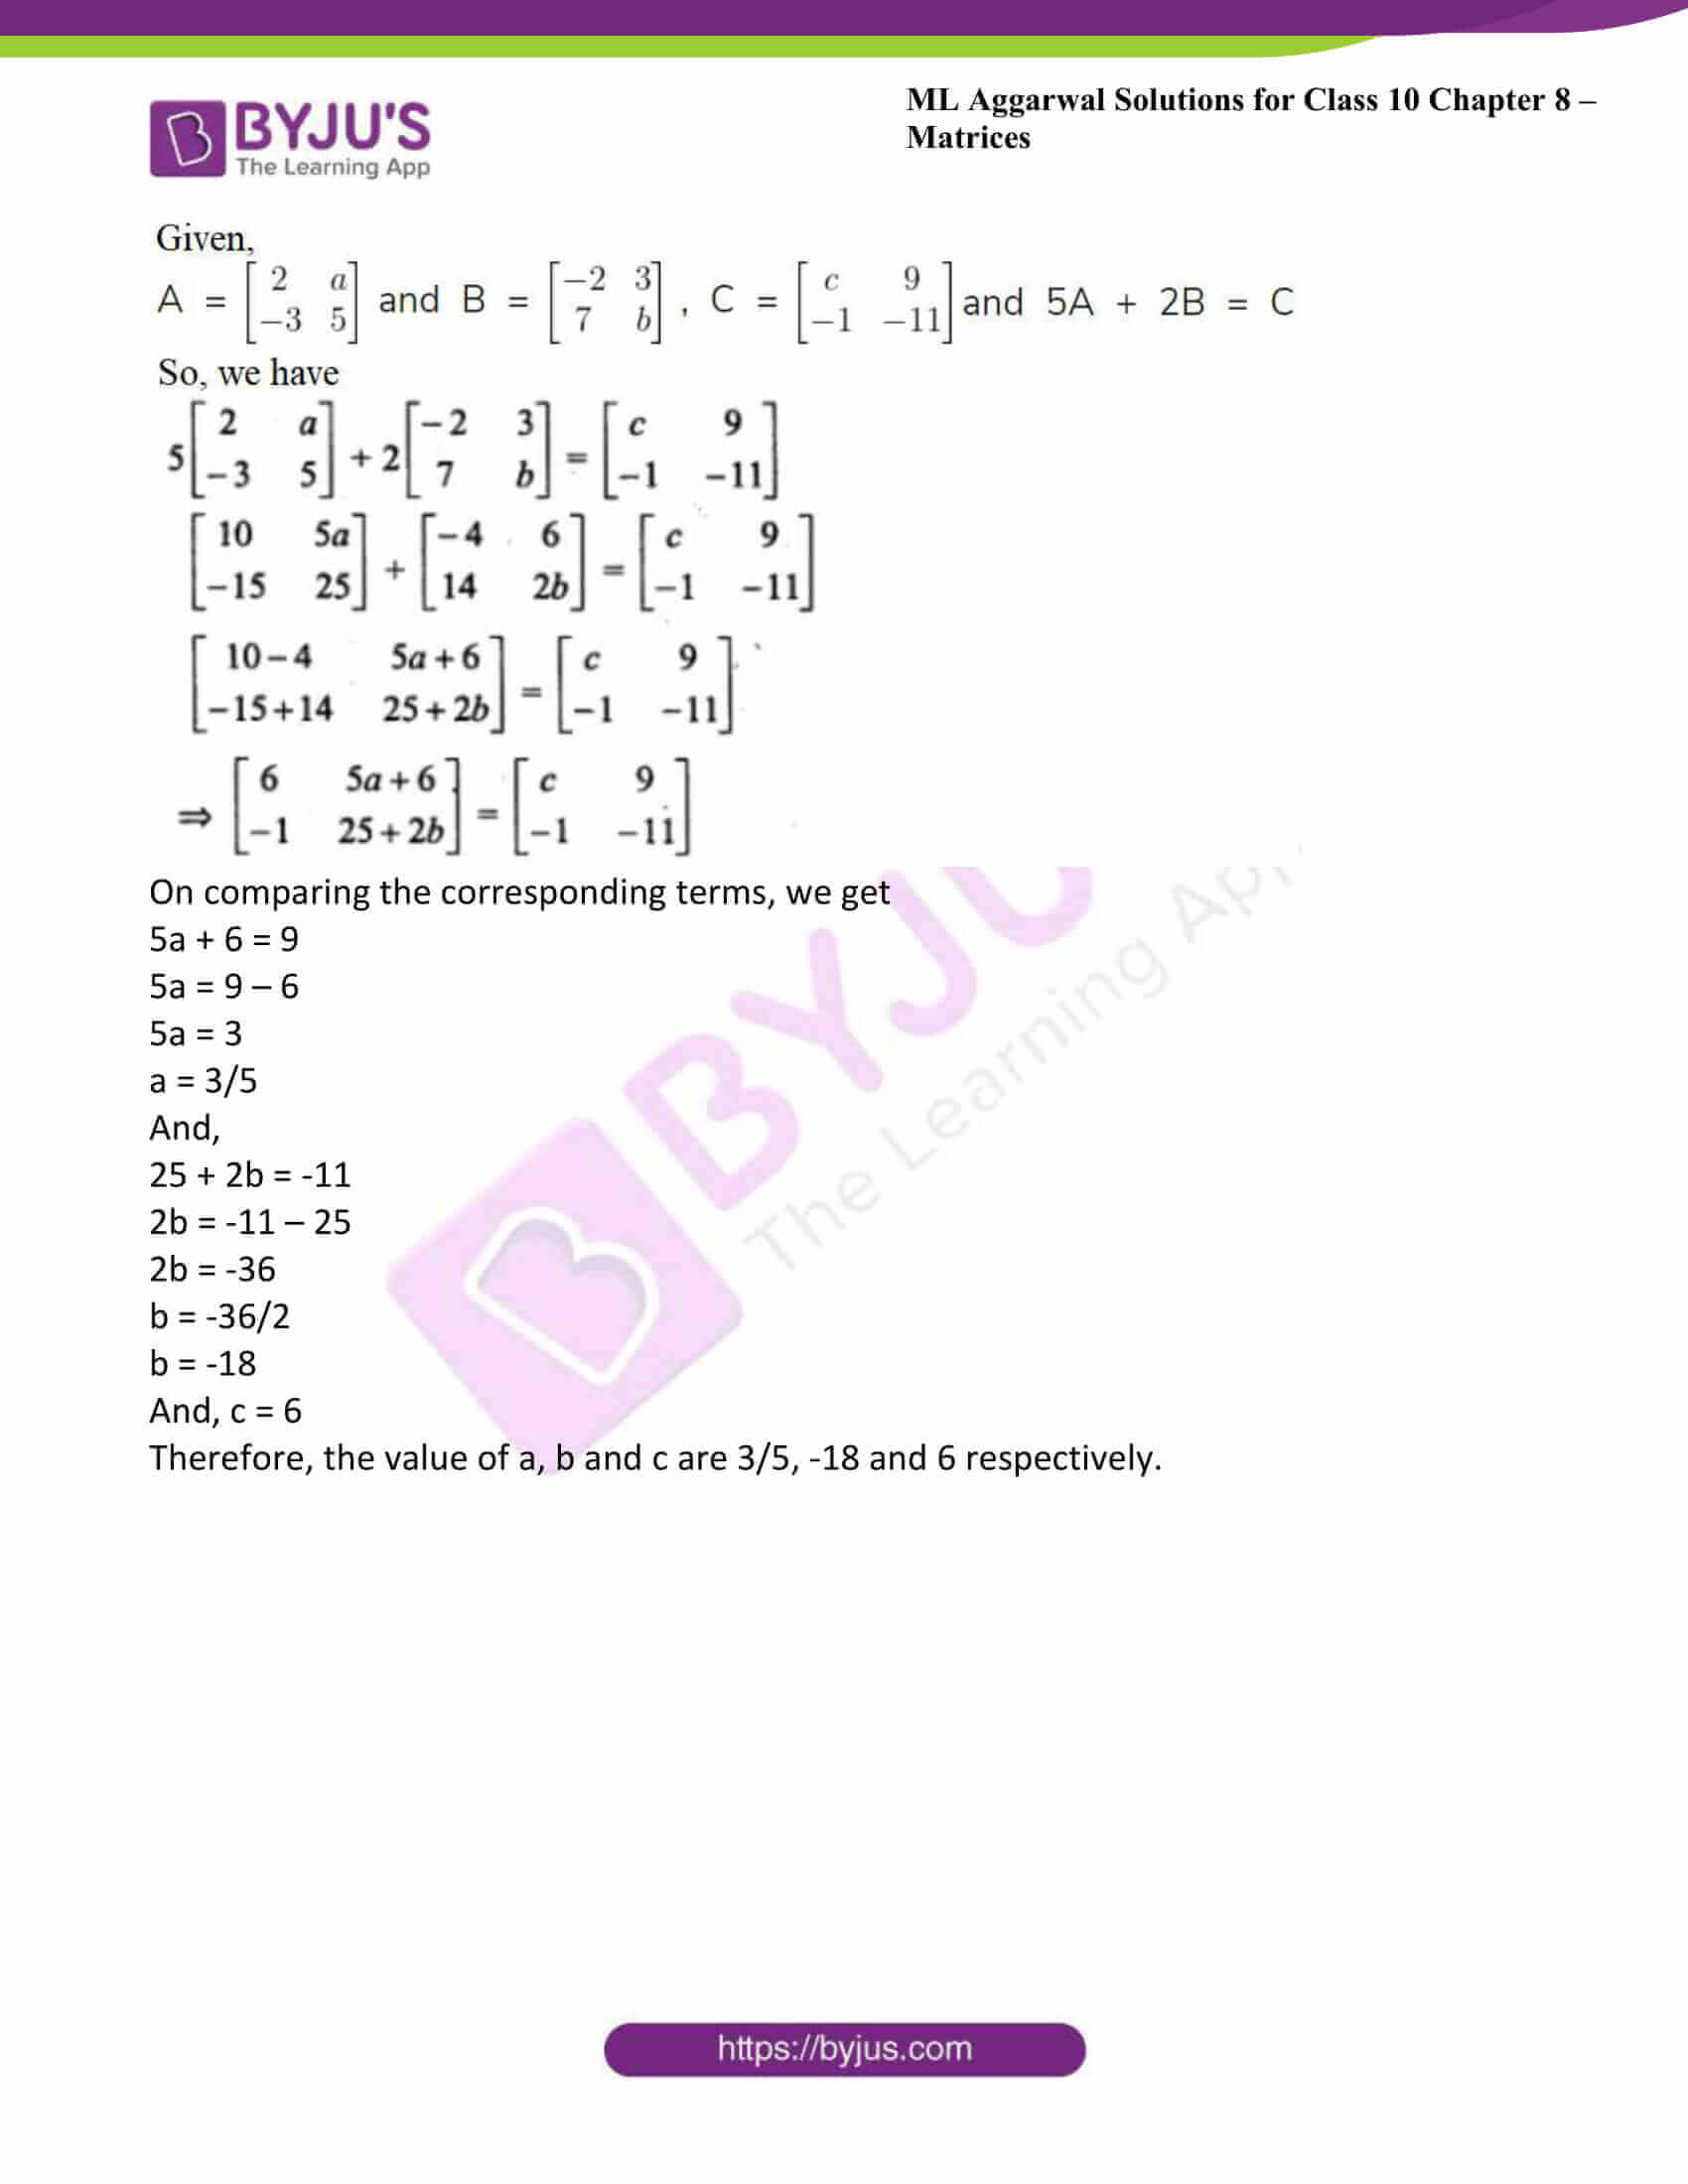 ml aggarwal solutions class 10 maths chapter 8 17